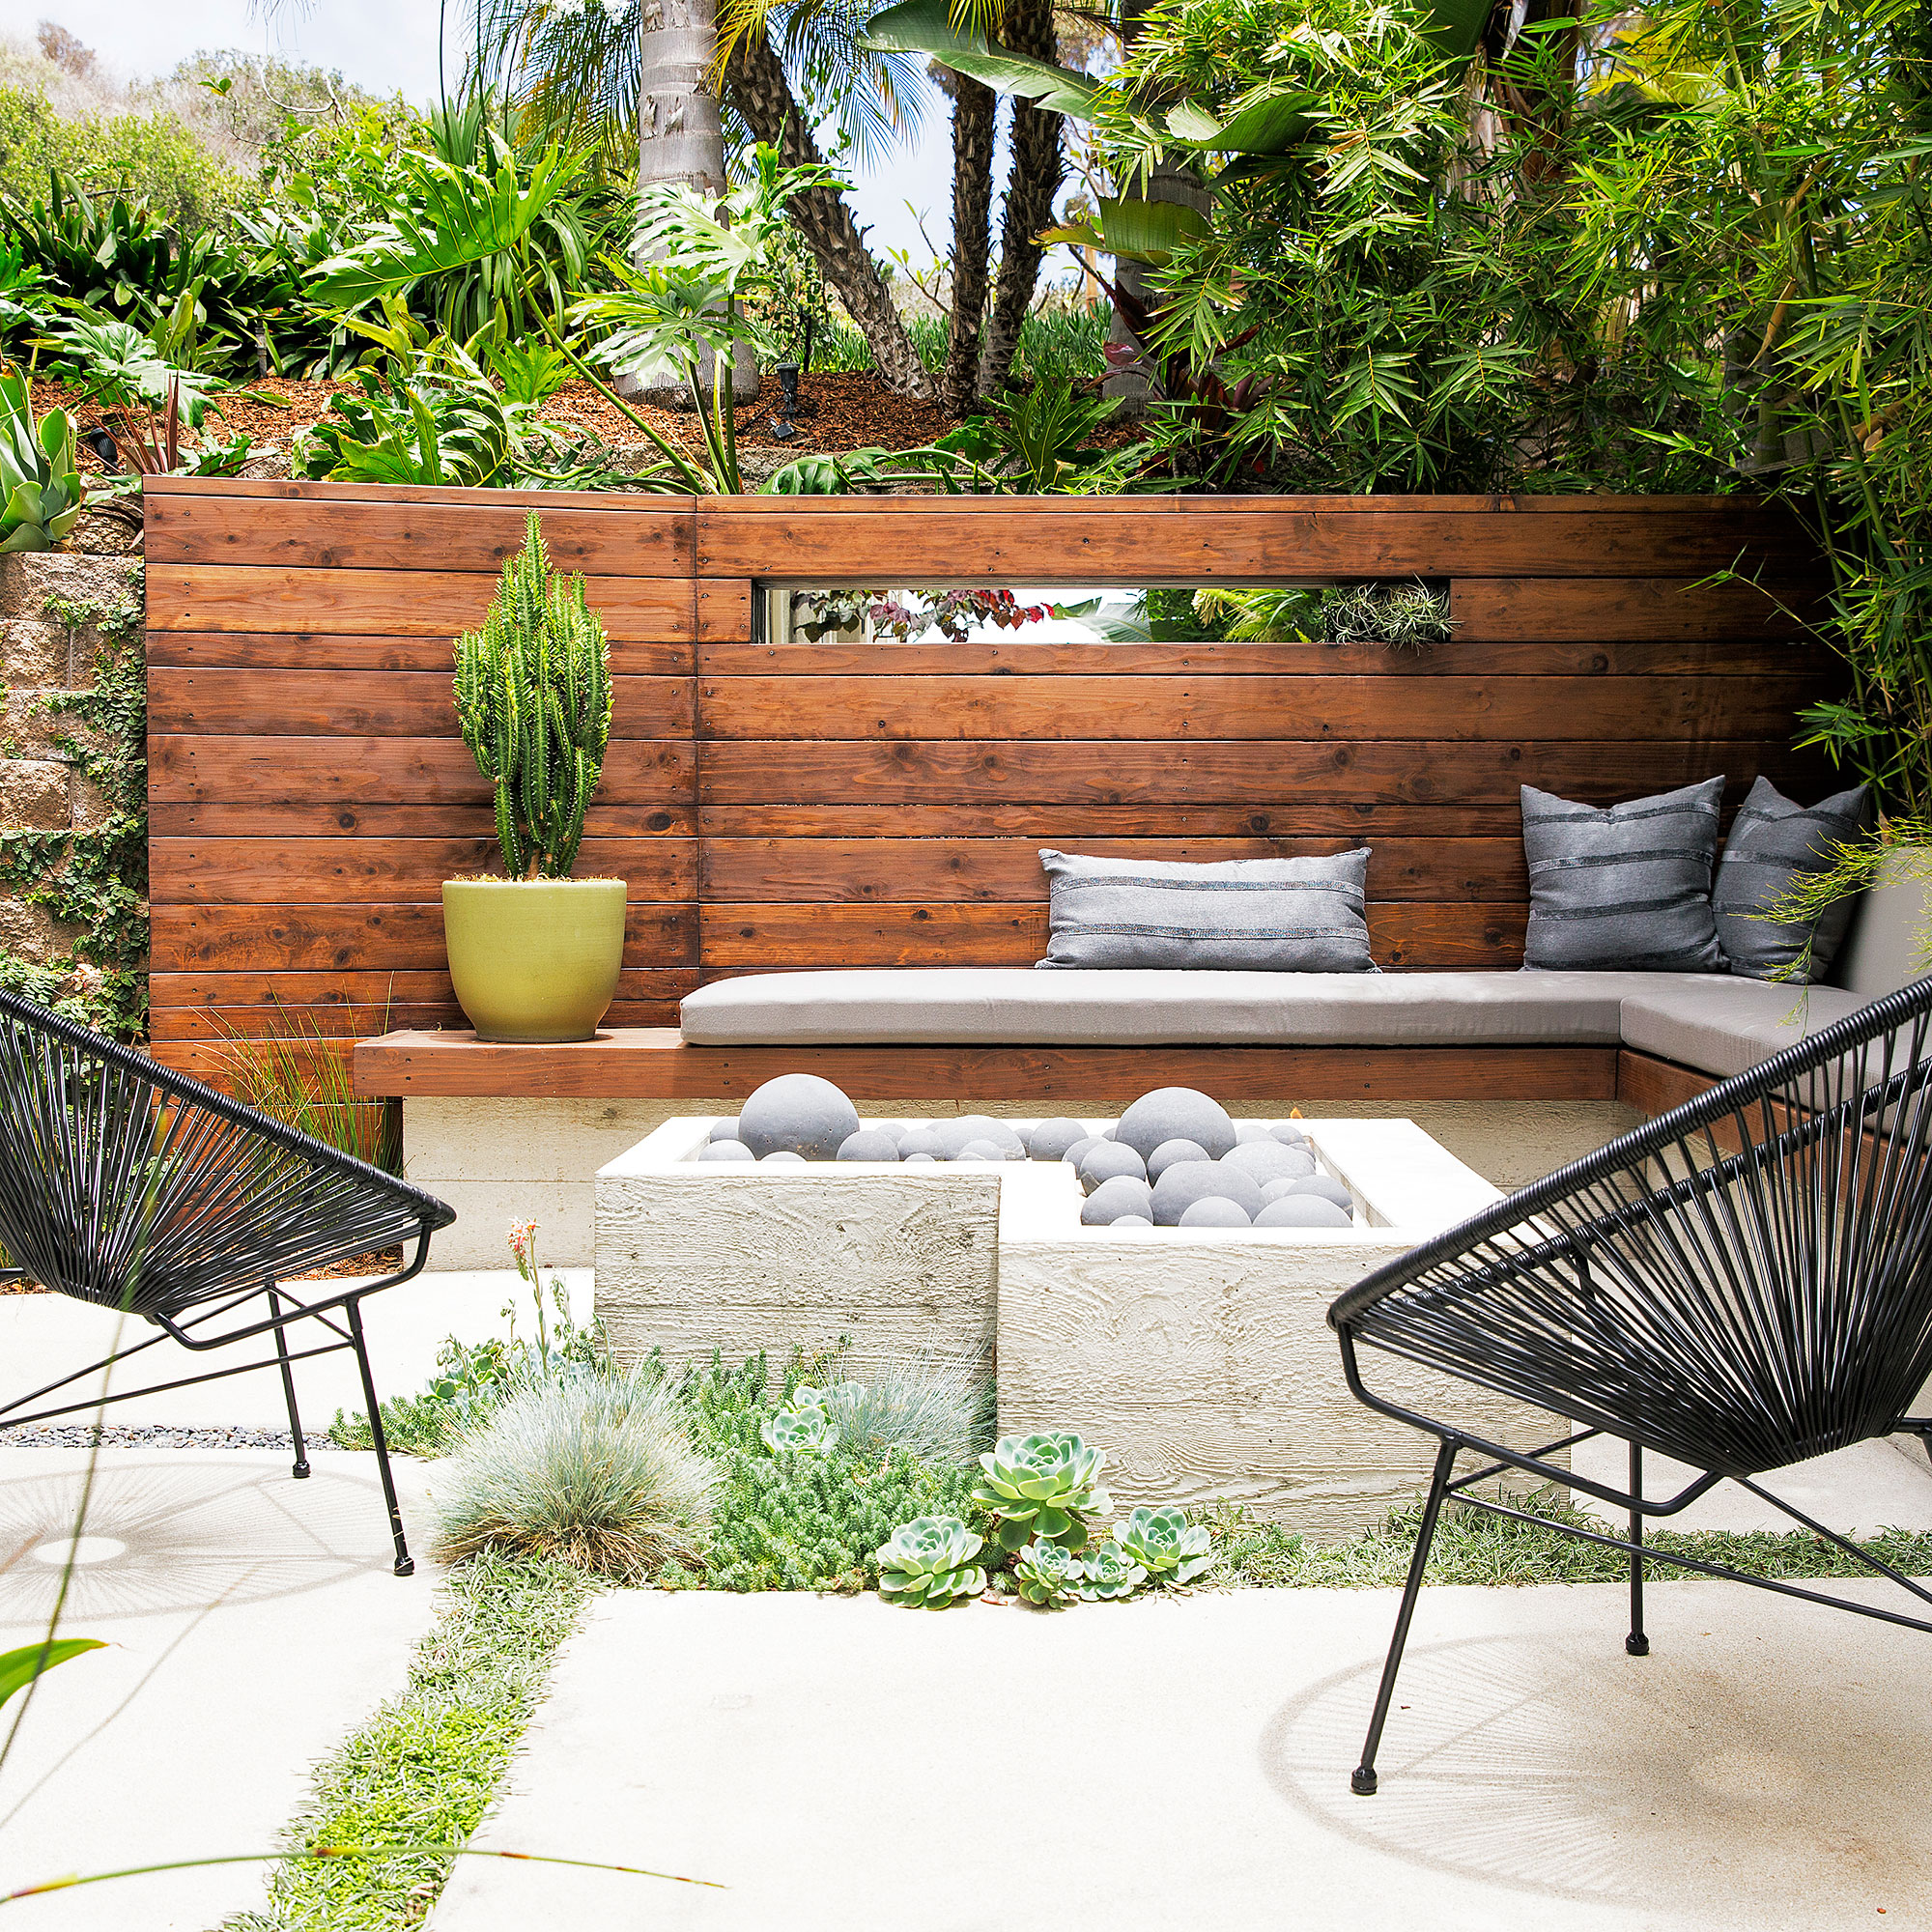 Create A Sunken Patio